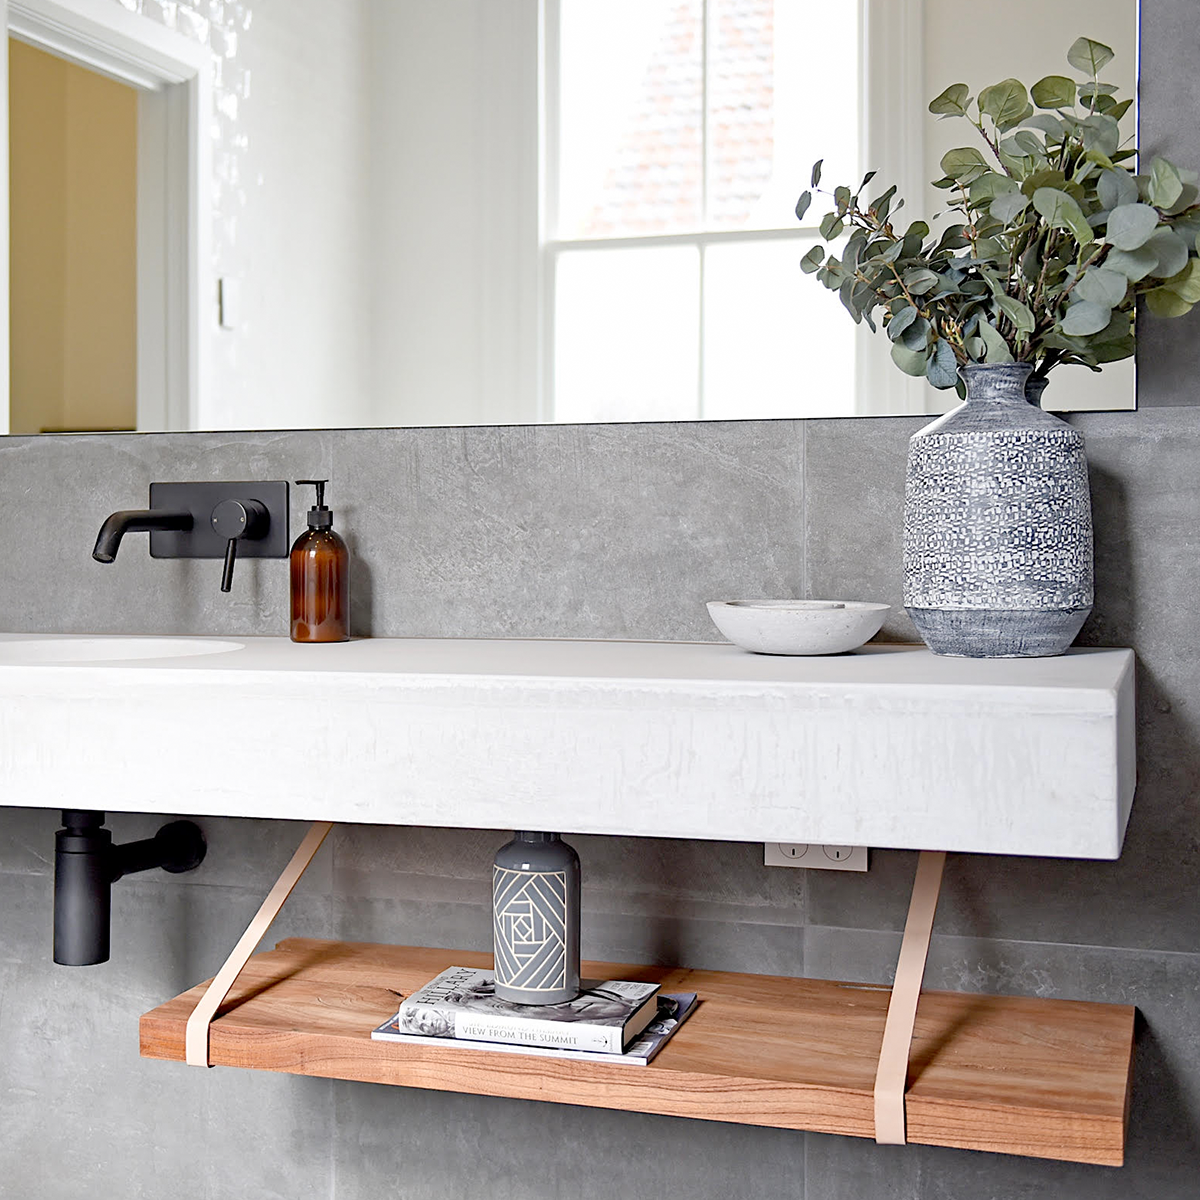 Concrete Studio | Floating vanity, Floating bathroom ...